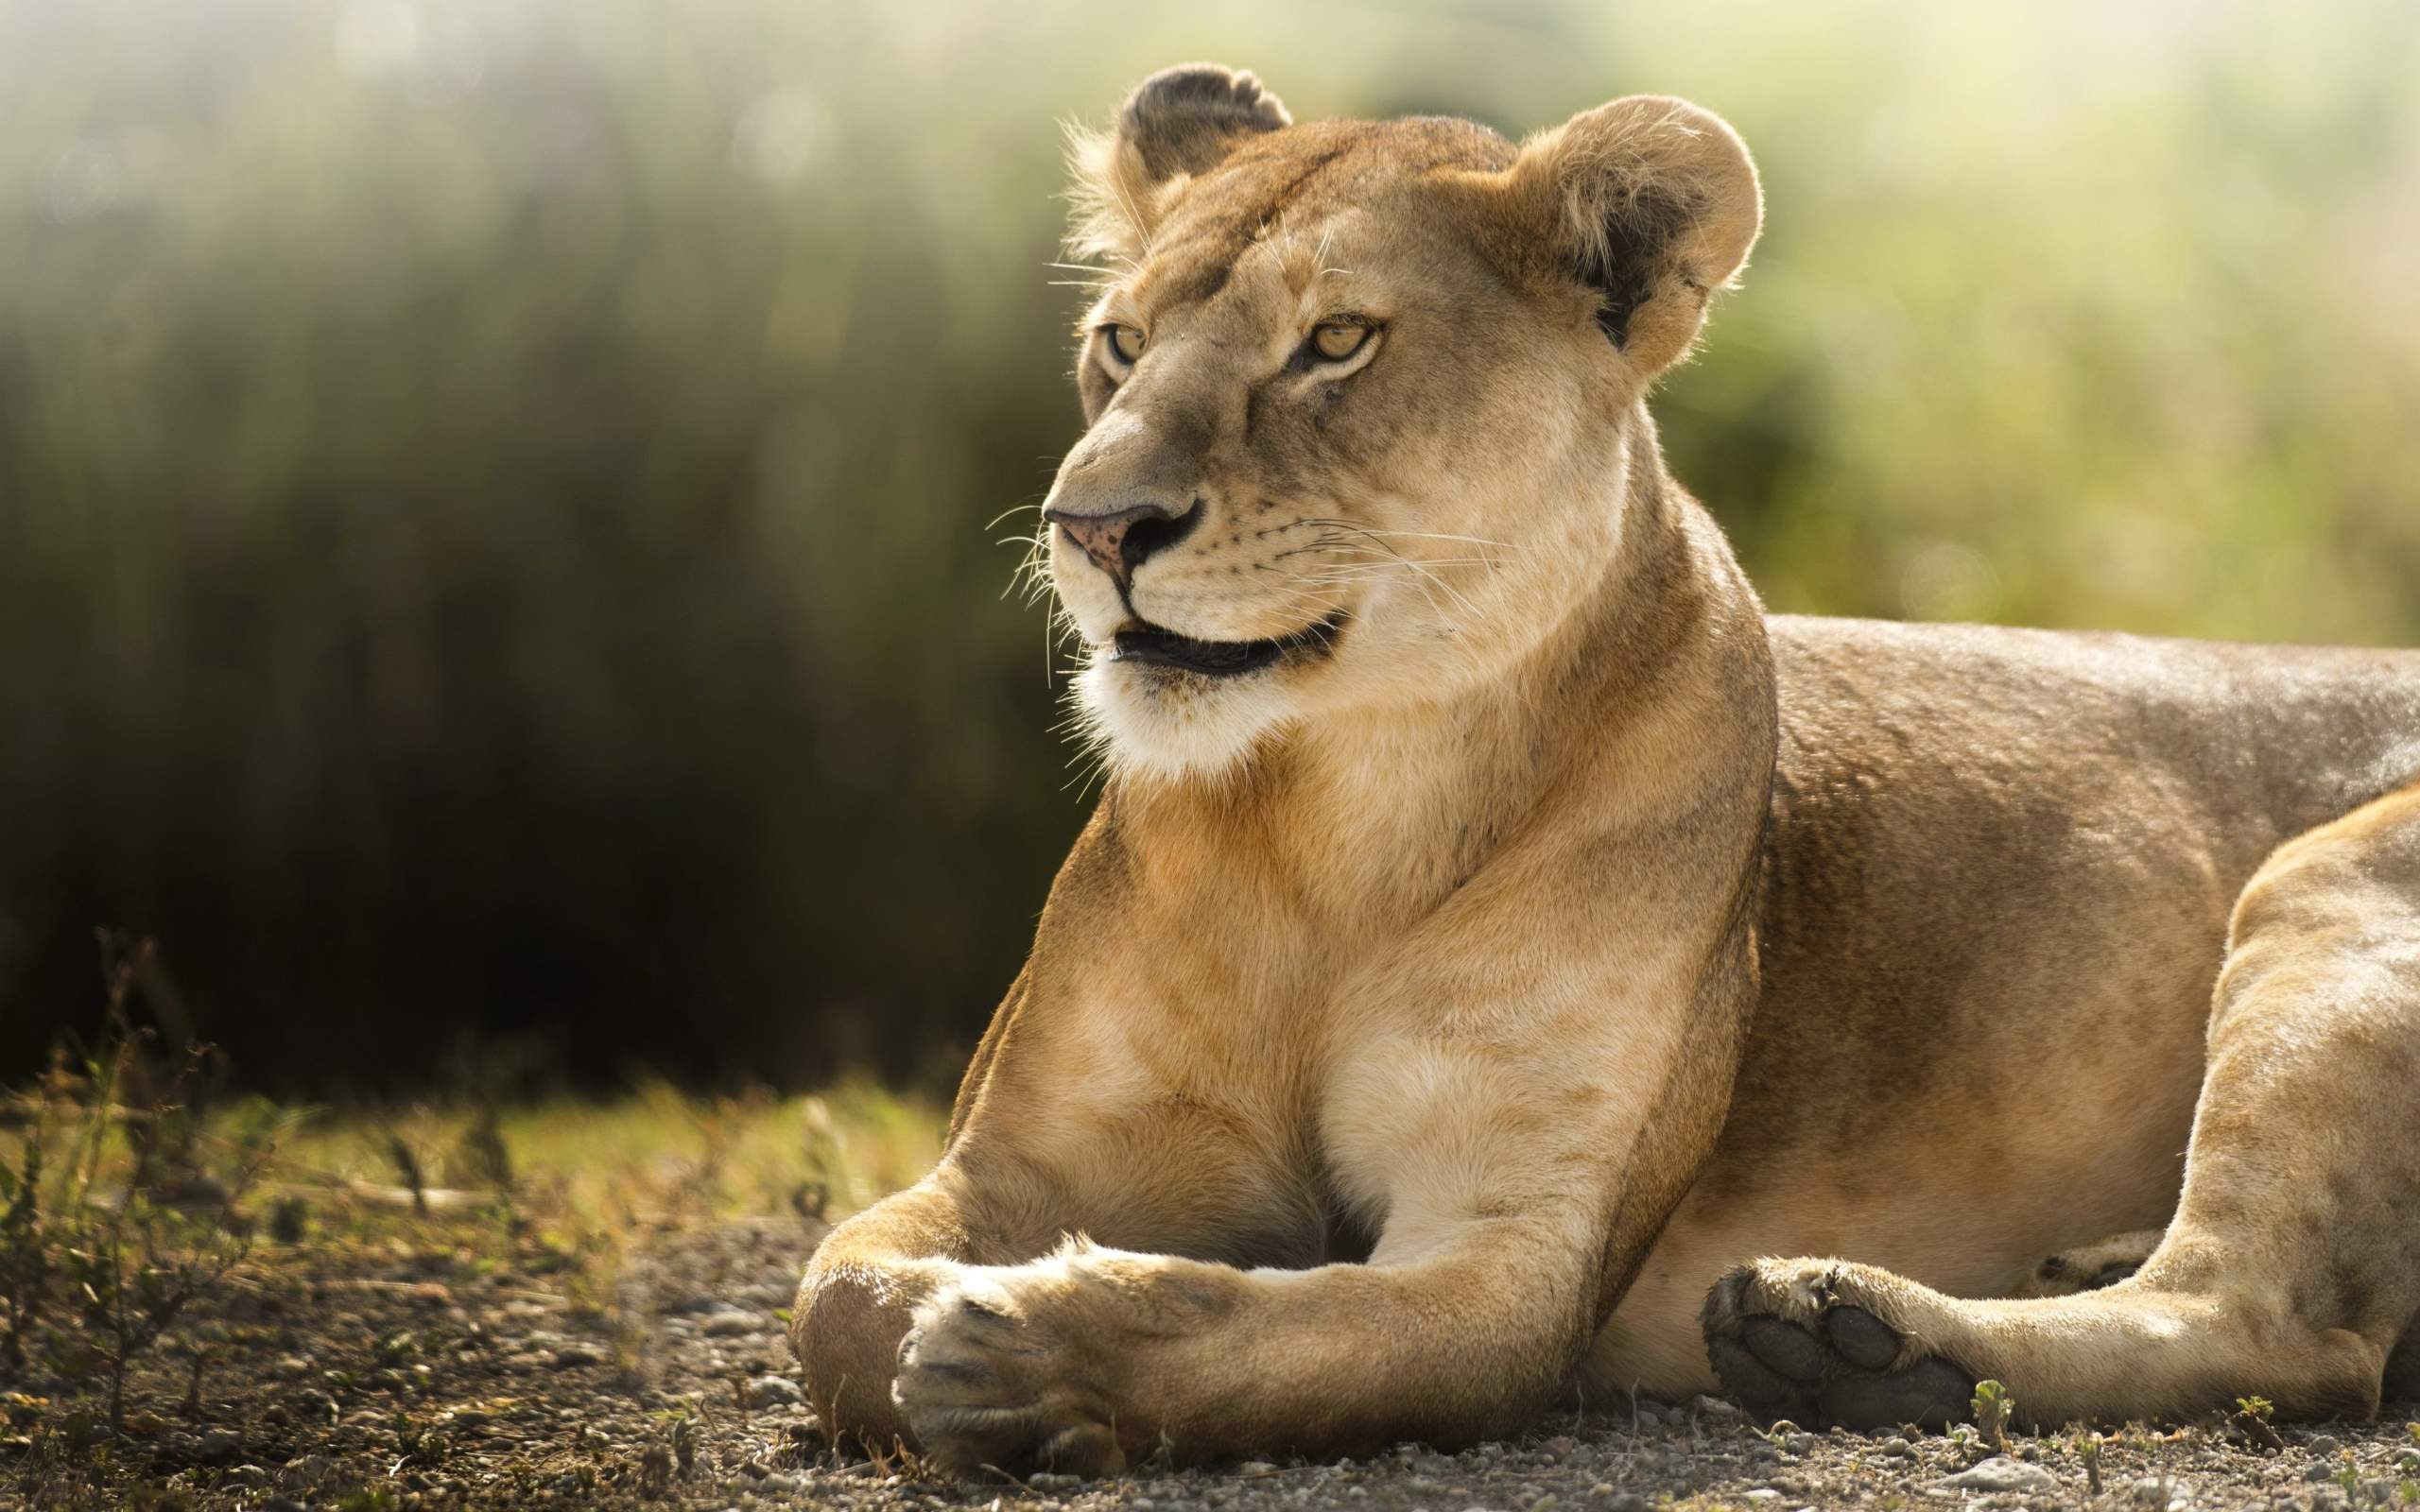 African Lioness HD488974041 - African Lioness HD - Lioness, Jumanji, African